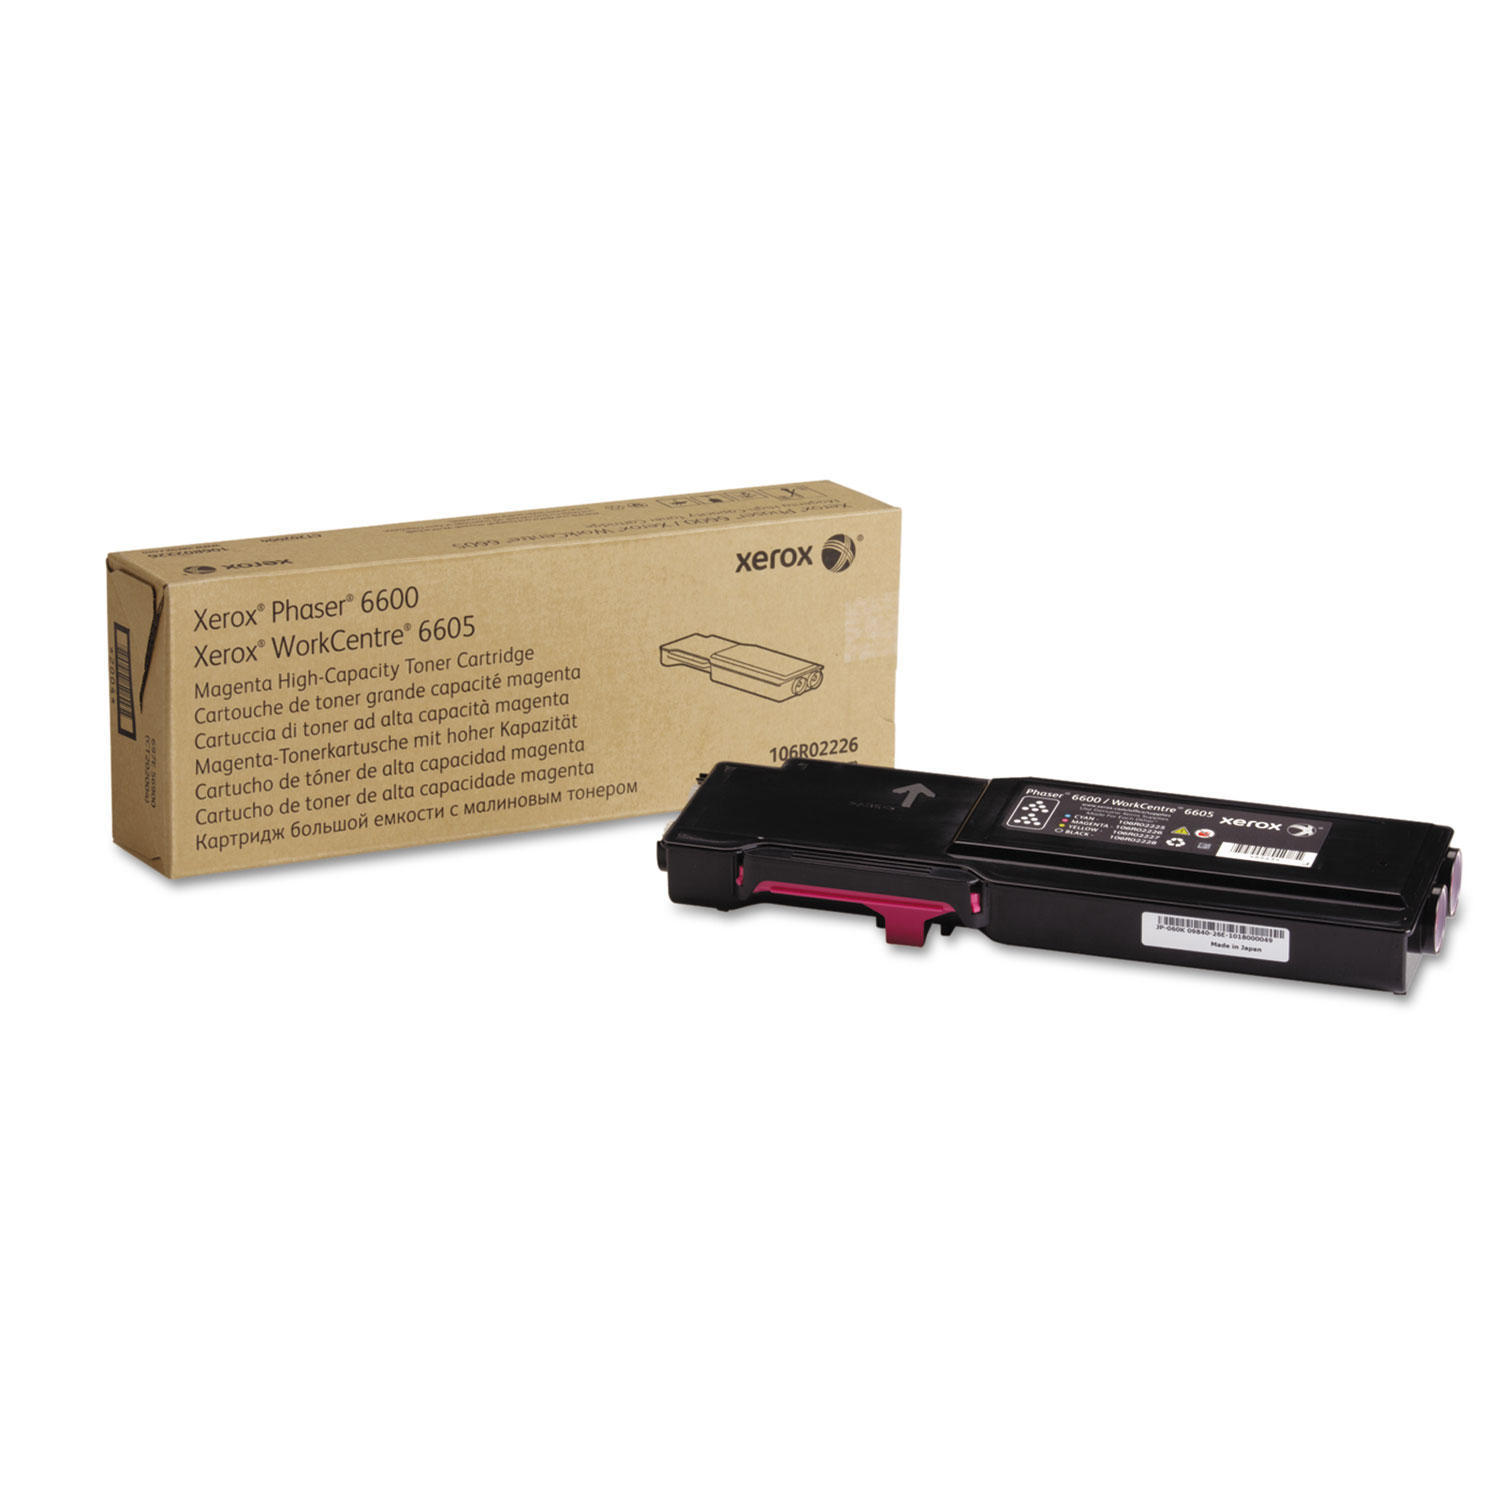 Xerox 106R02226 Original Magenta Toner Cartridge High Yield For Phaser 6600 WorkCentre 6605 Printer